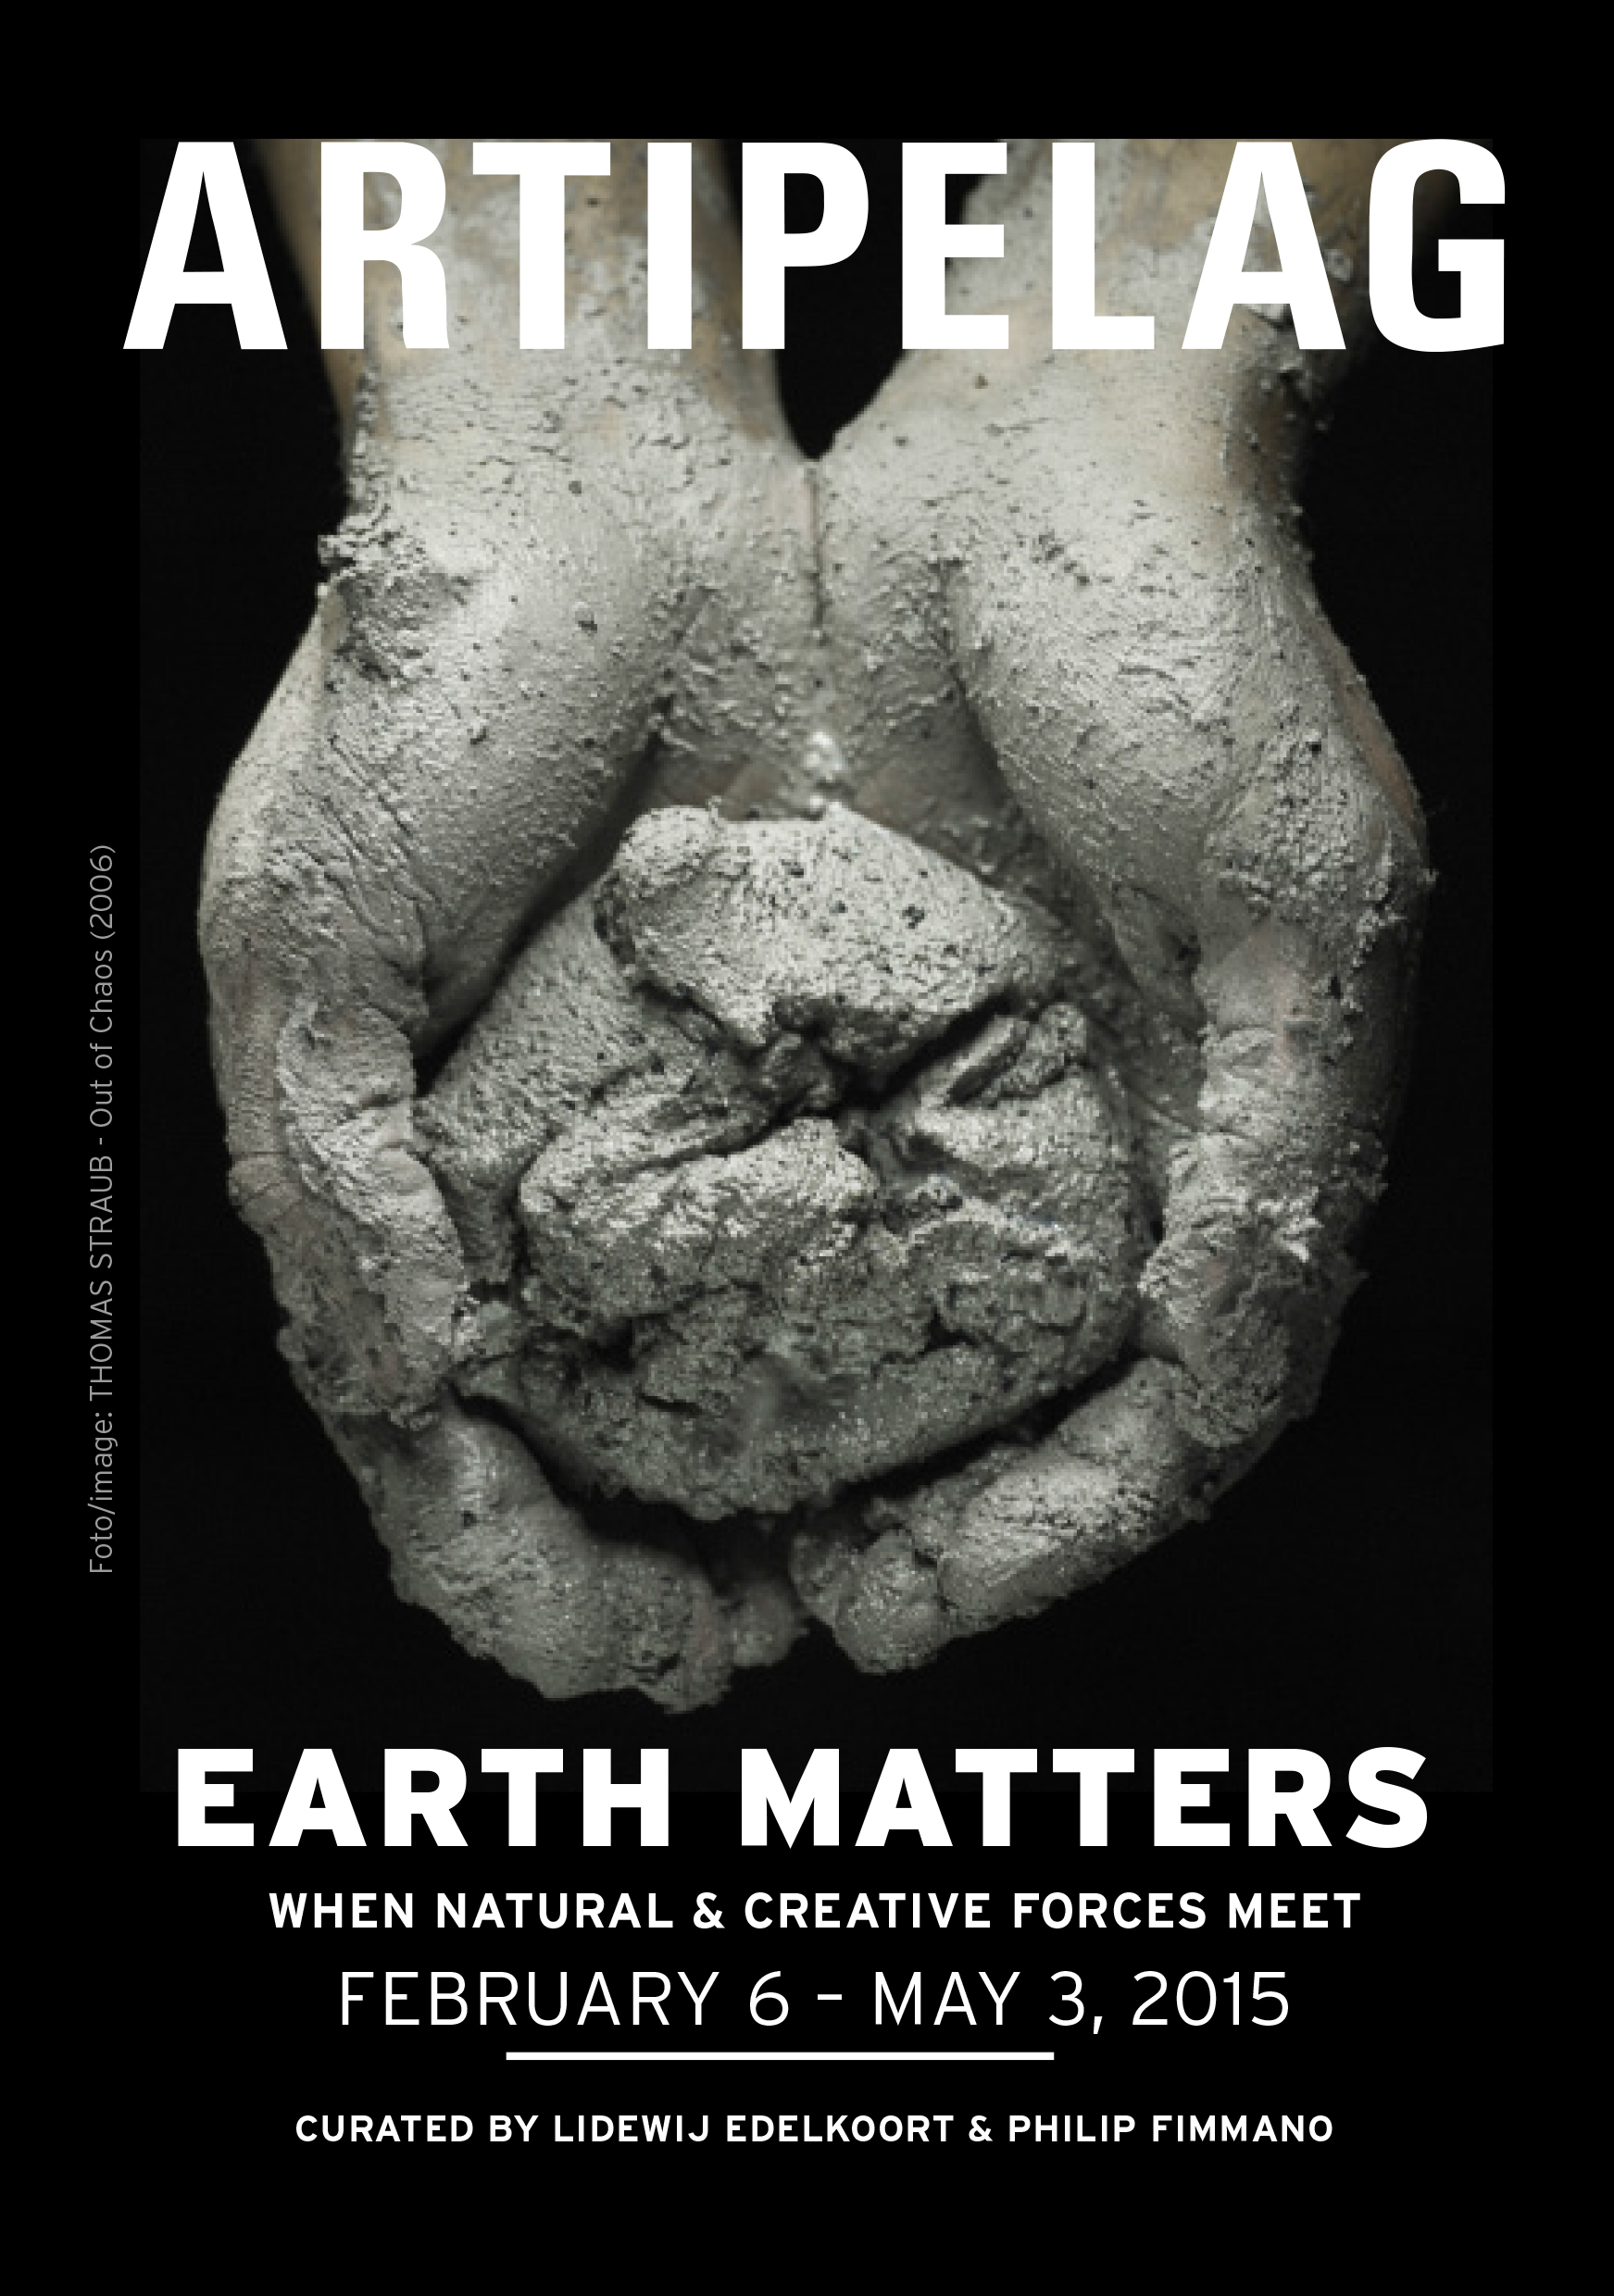 Exhibition Earth Matters Artipelag